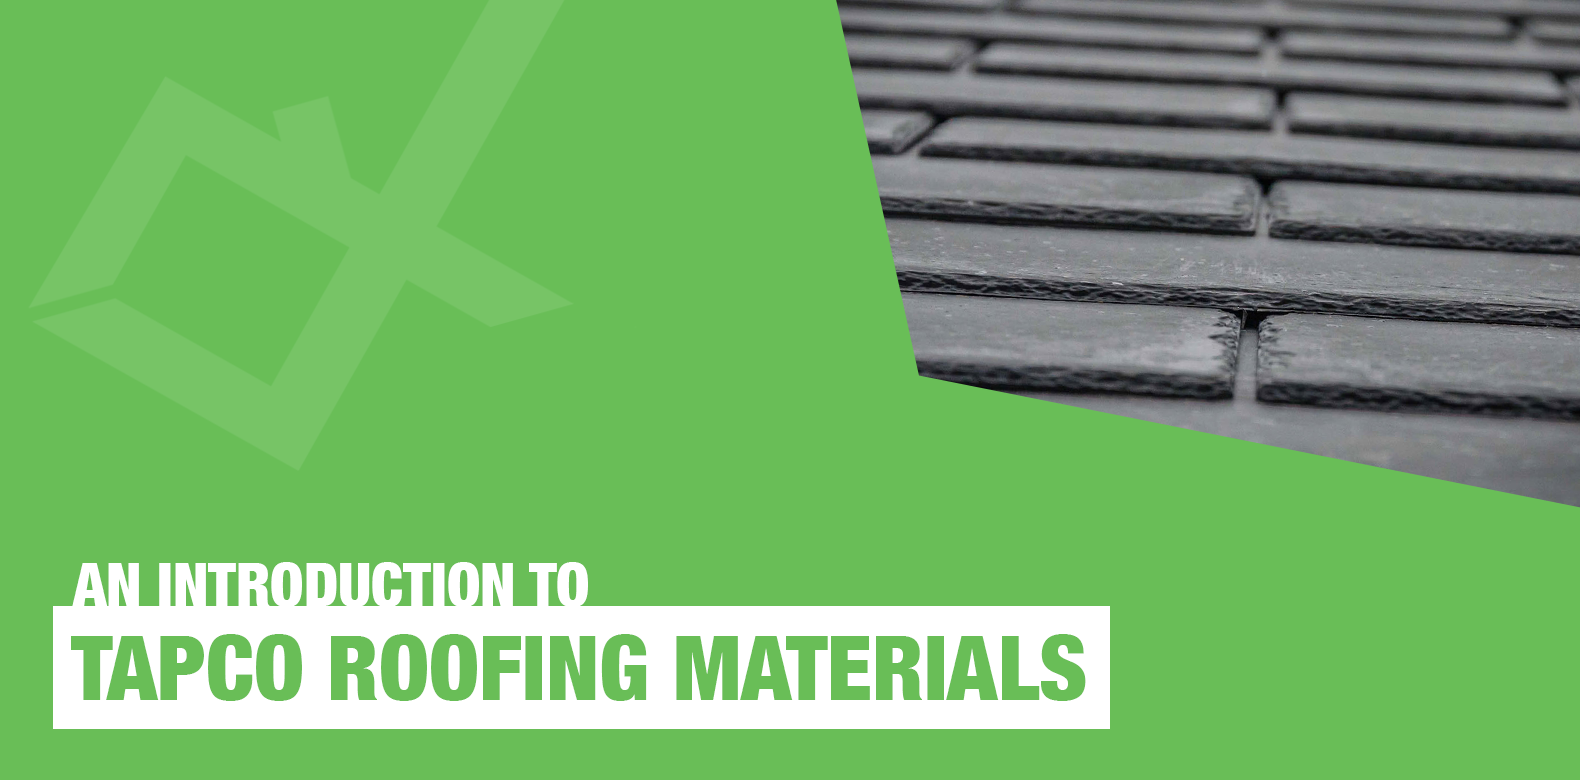 An Introduction To Tapco Roofing Materials Roofing Megastore